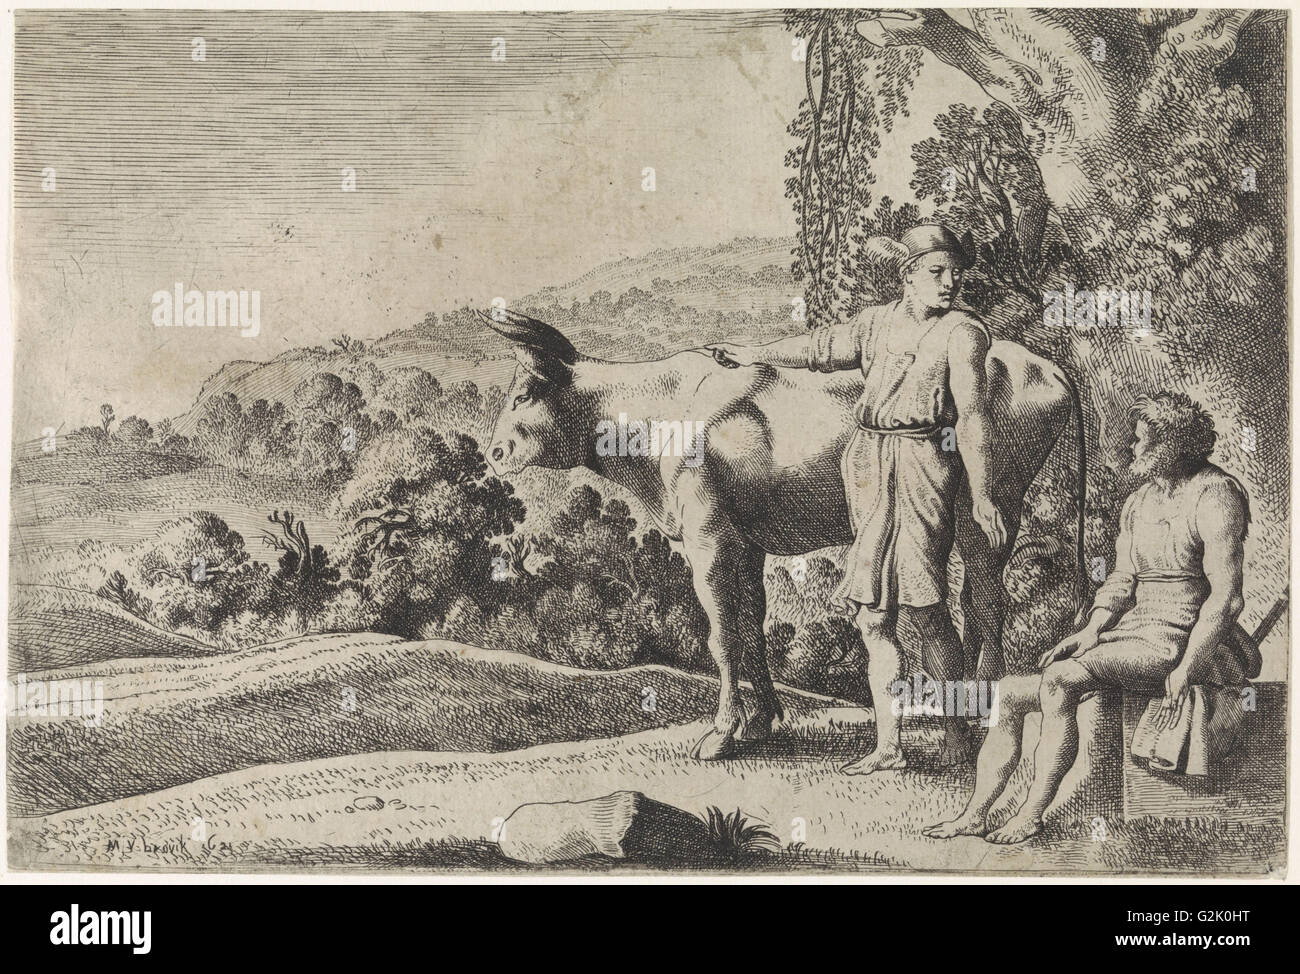 Mercury is pointing to the cow Io and looks at Argus, which sits on a stone block, scene from Ovid's Metamorphoses - Stock Image